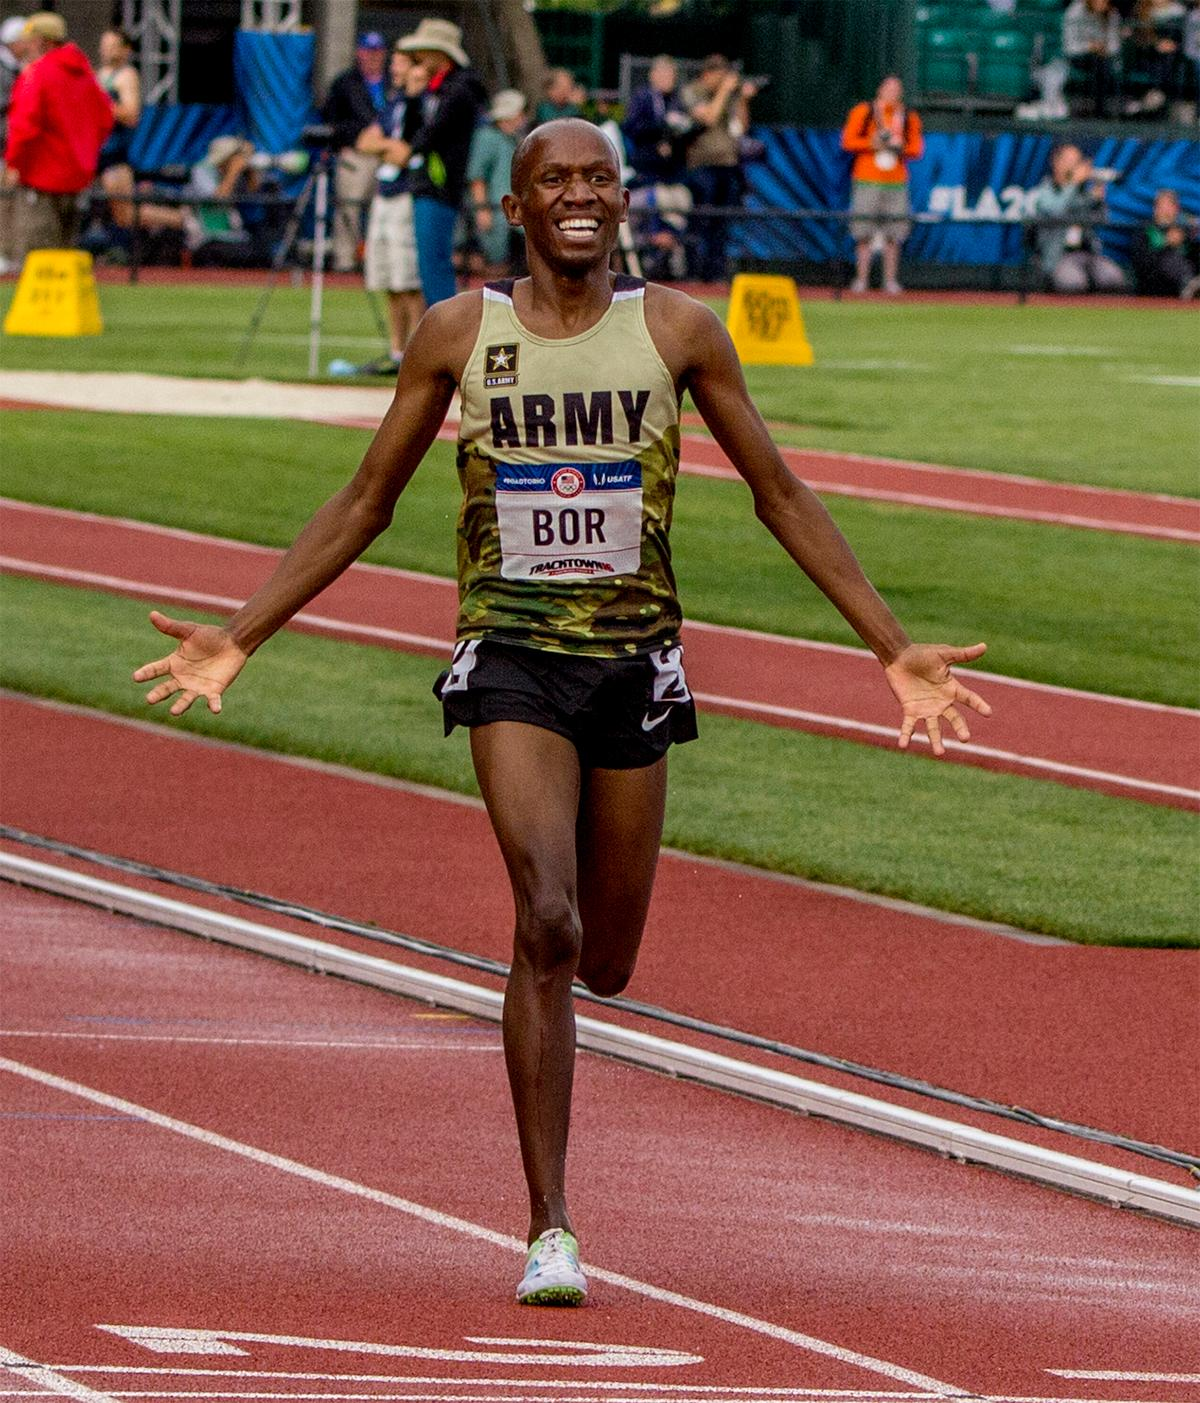 U.S. Army's Hillary Bor celebrates as he crosses the line in second place in the 3,000 meter steeplechase. Bor finished second with a time of 8:24.10. Photo by August Frank, Oregon News Lab